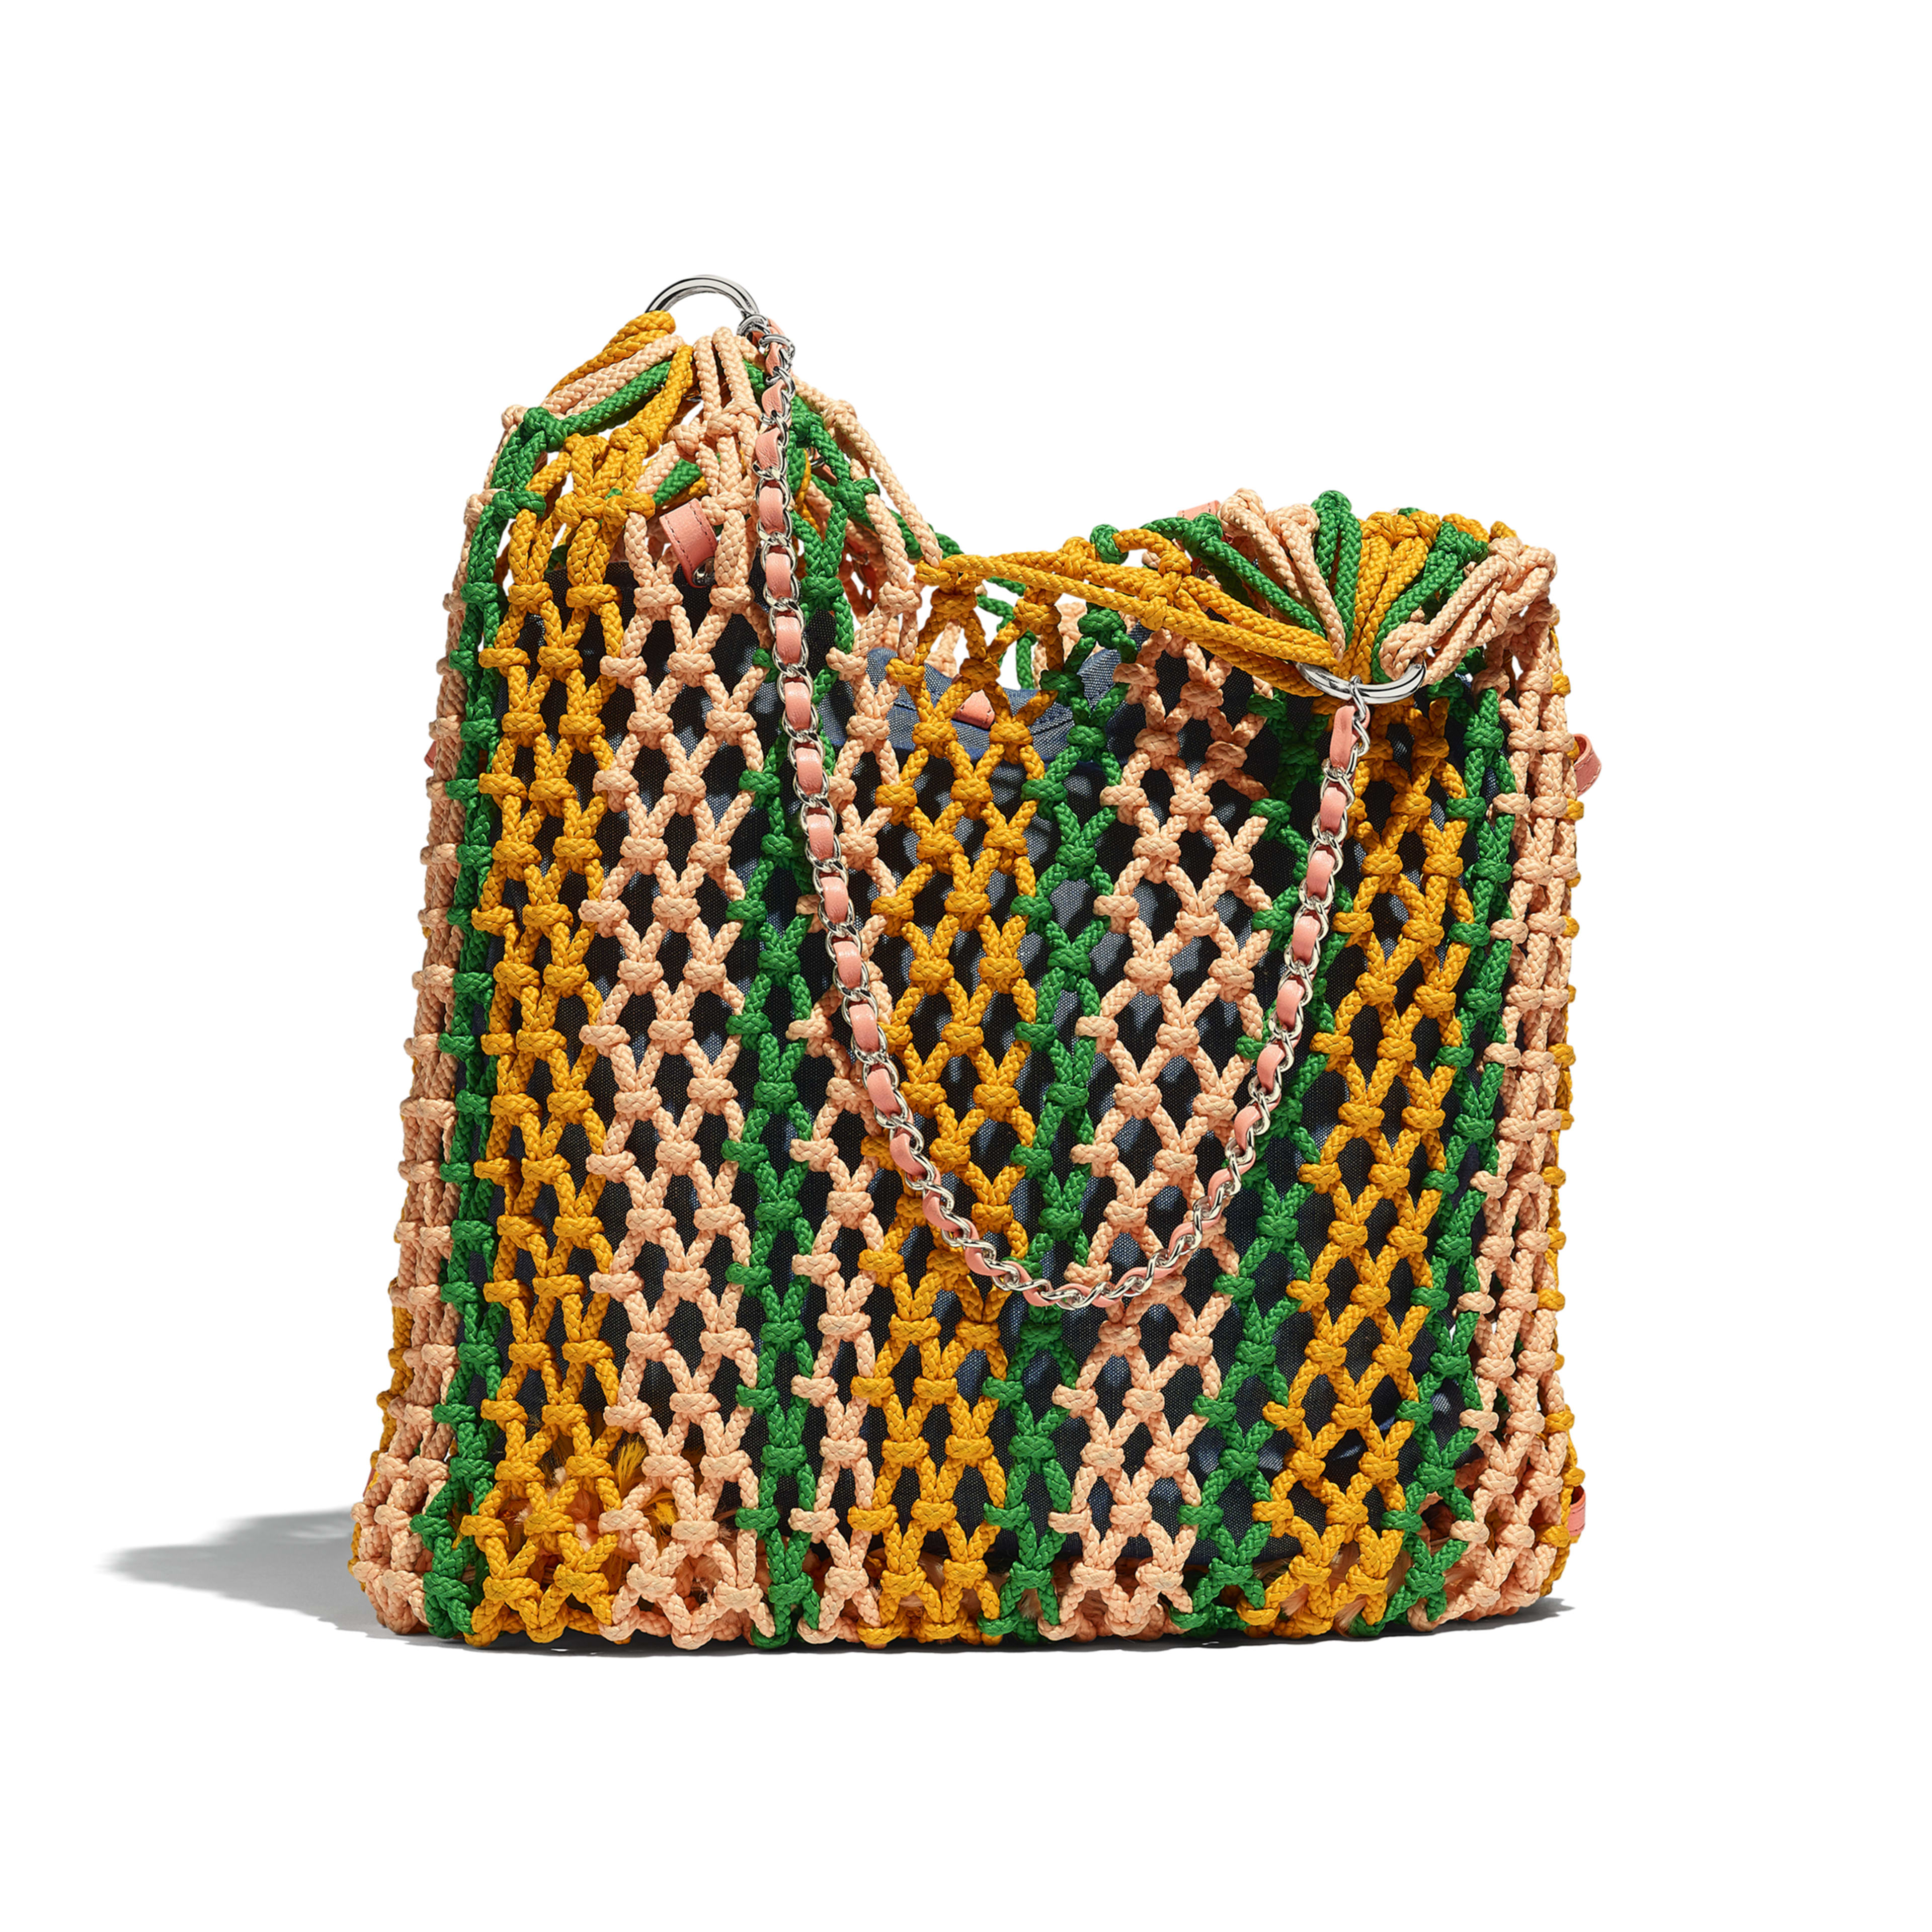 Large Shopping Bag - Green, Orange & Pink - Mixed Fibers, Lambskin & Silver-Tone Metal - Alternative view - see full sized version